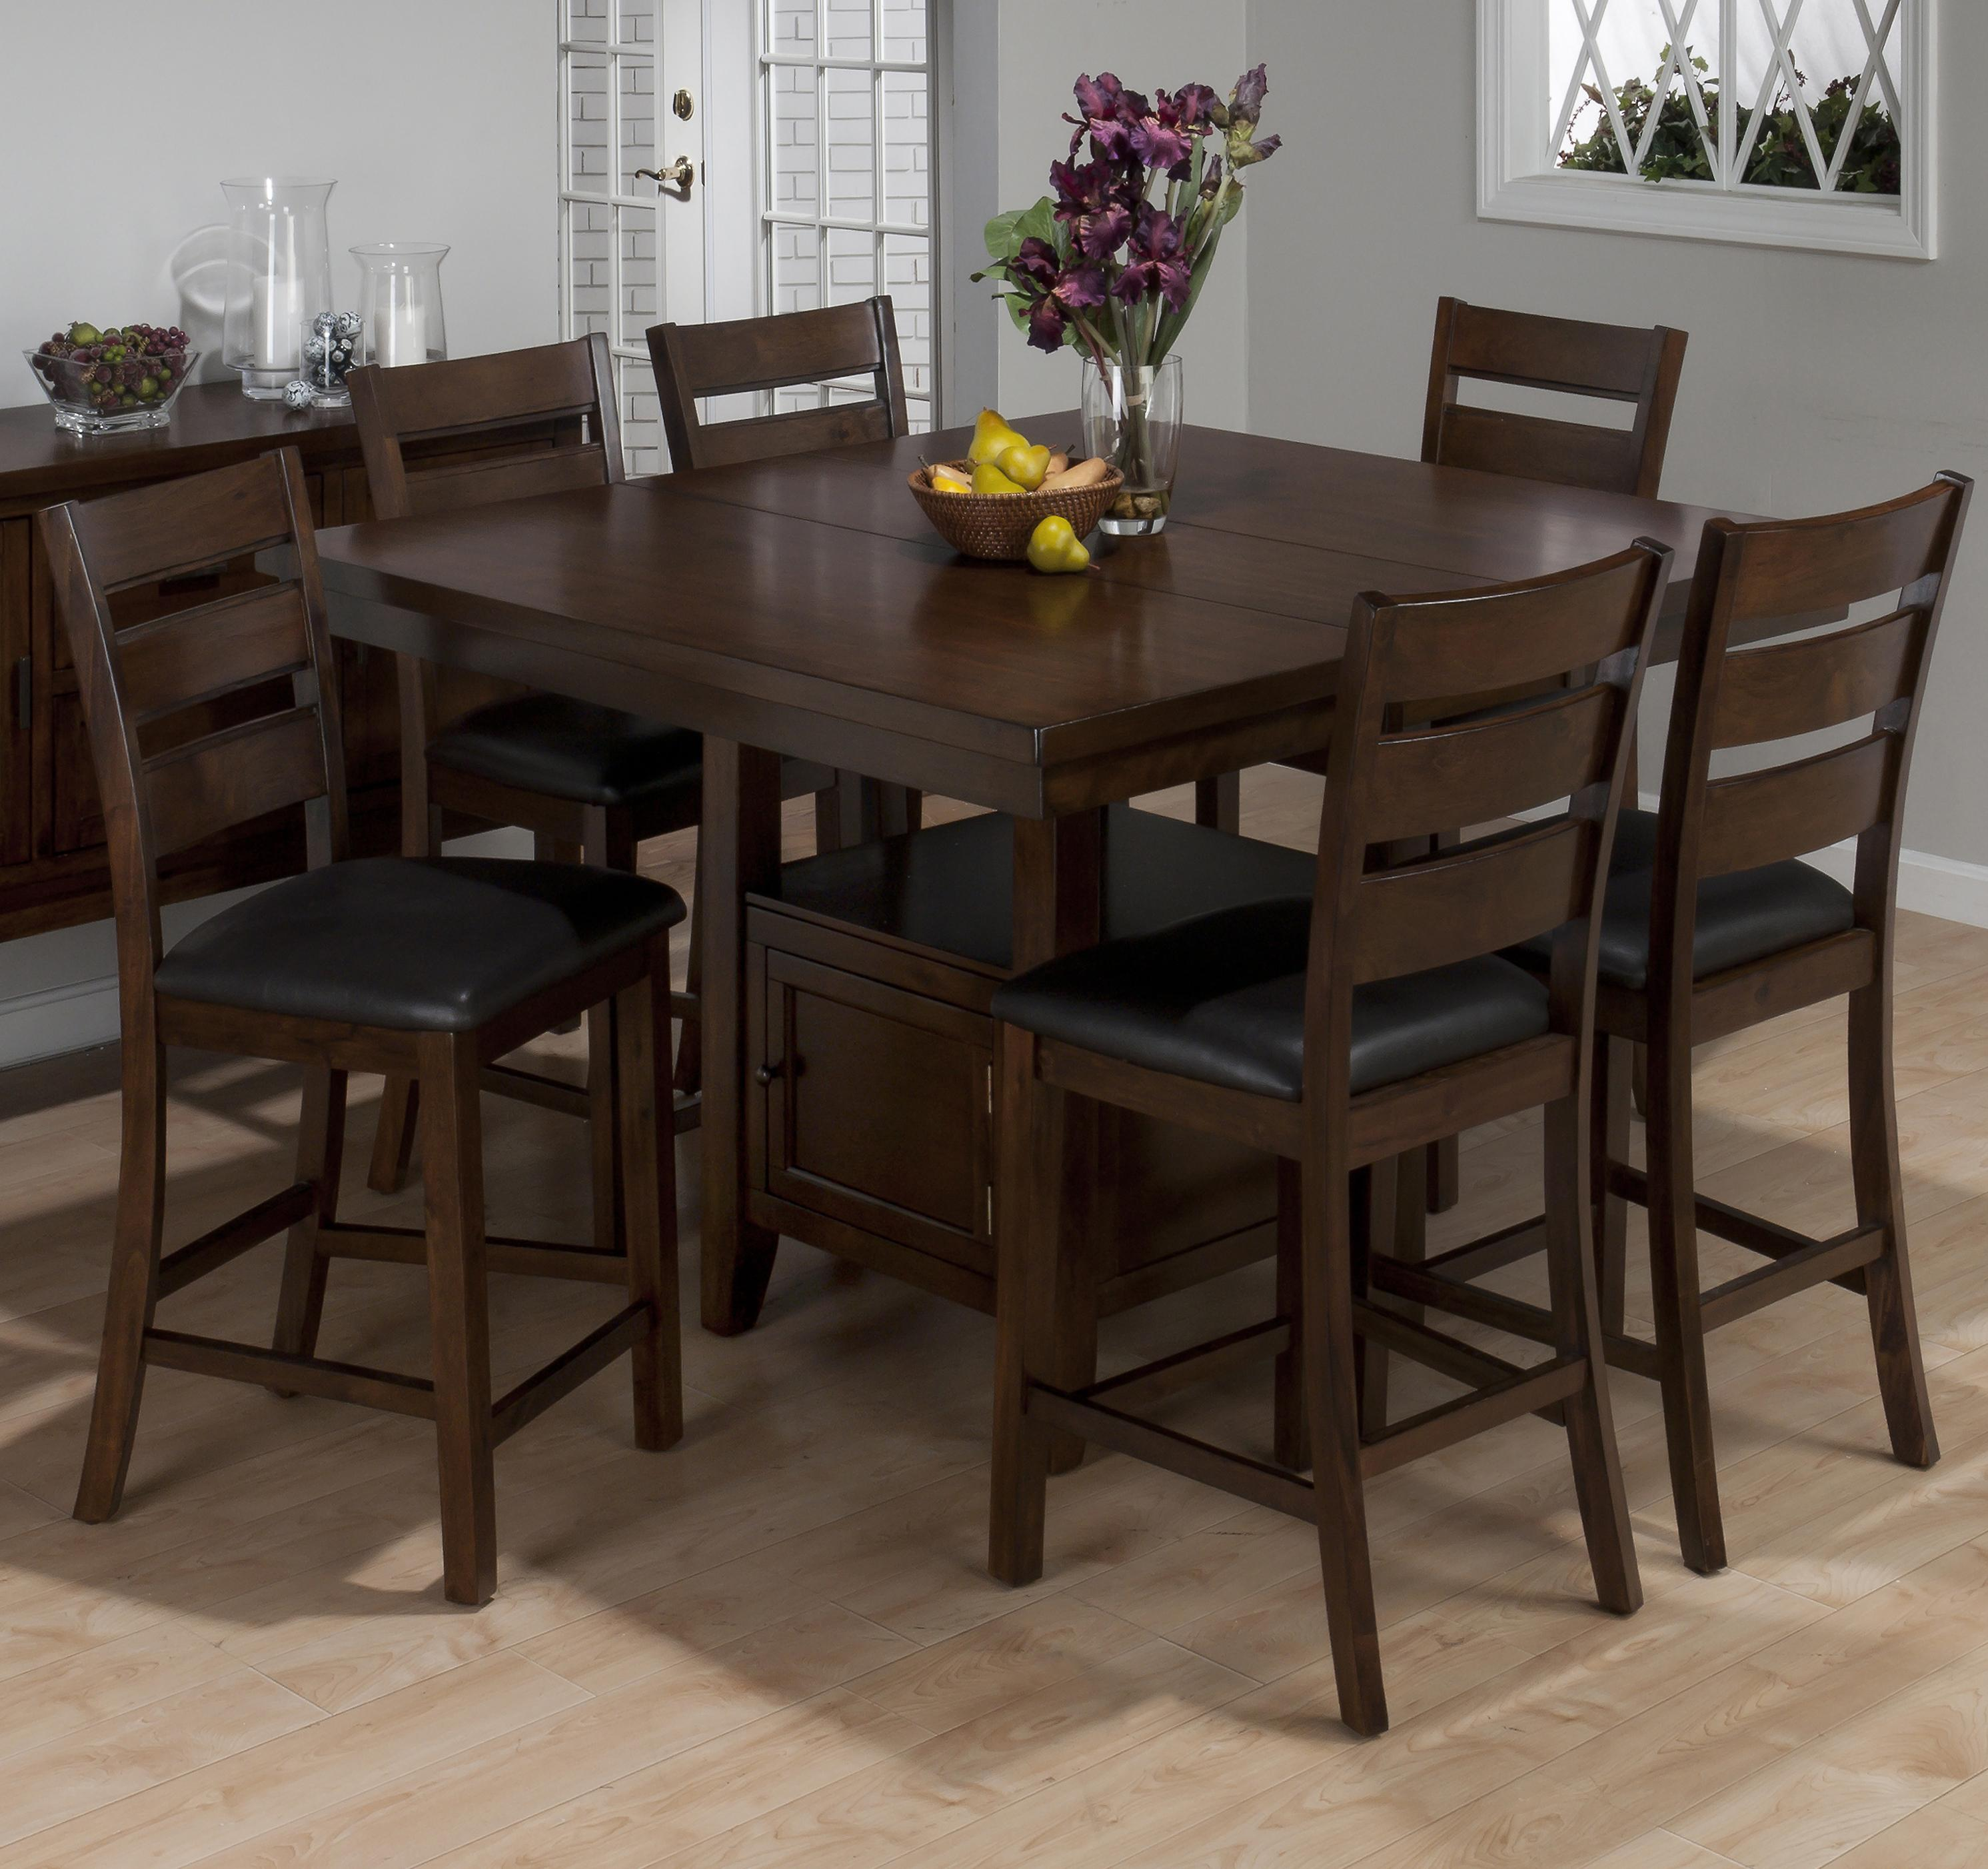 Jofran Taylor Brown Cherry 7 Piece Counter Height Dining Set - Item Number 337- & Jofran Taylor Brown Cherry 7 Piece Counter Height Dining Set with ...